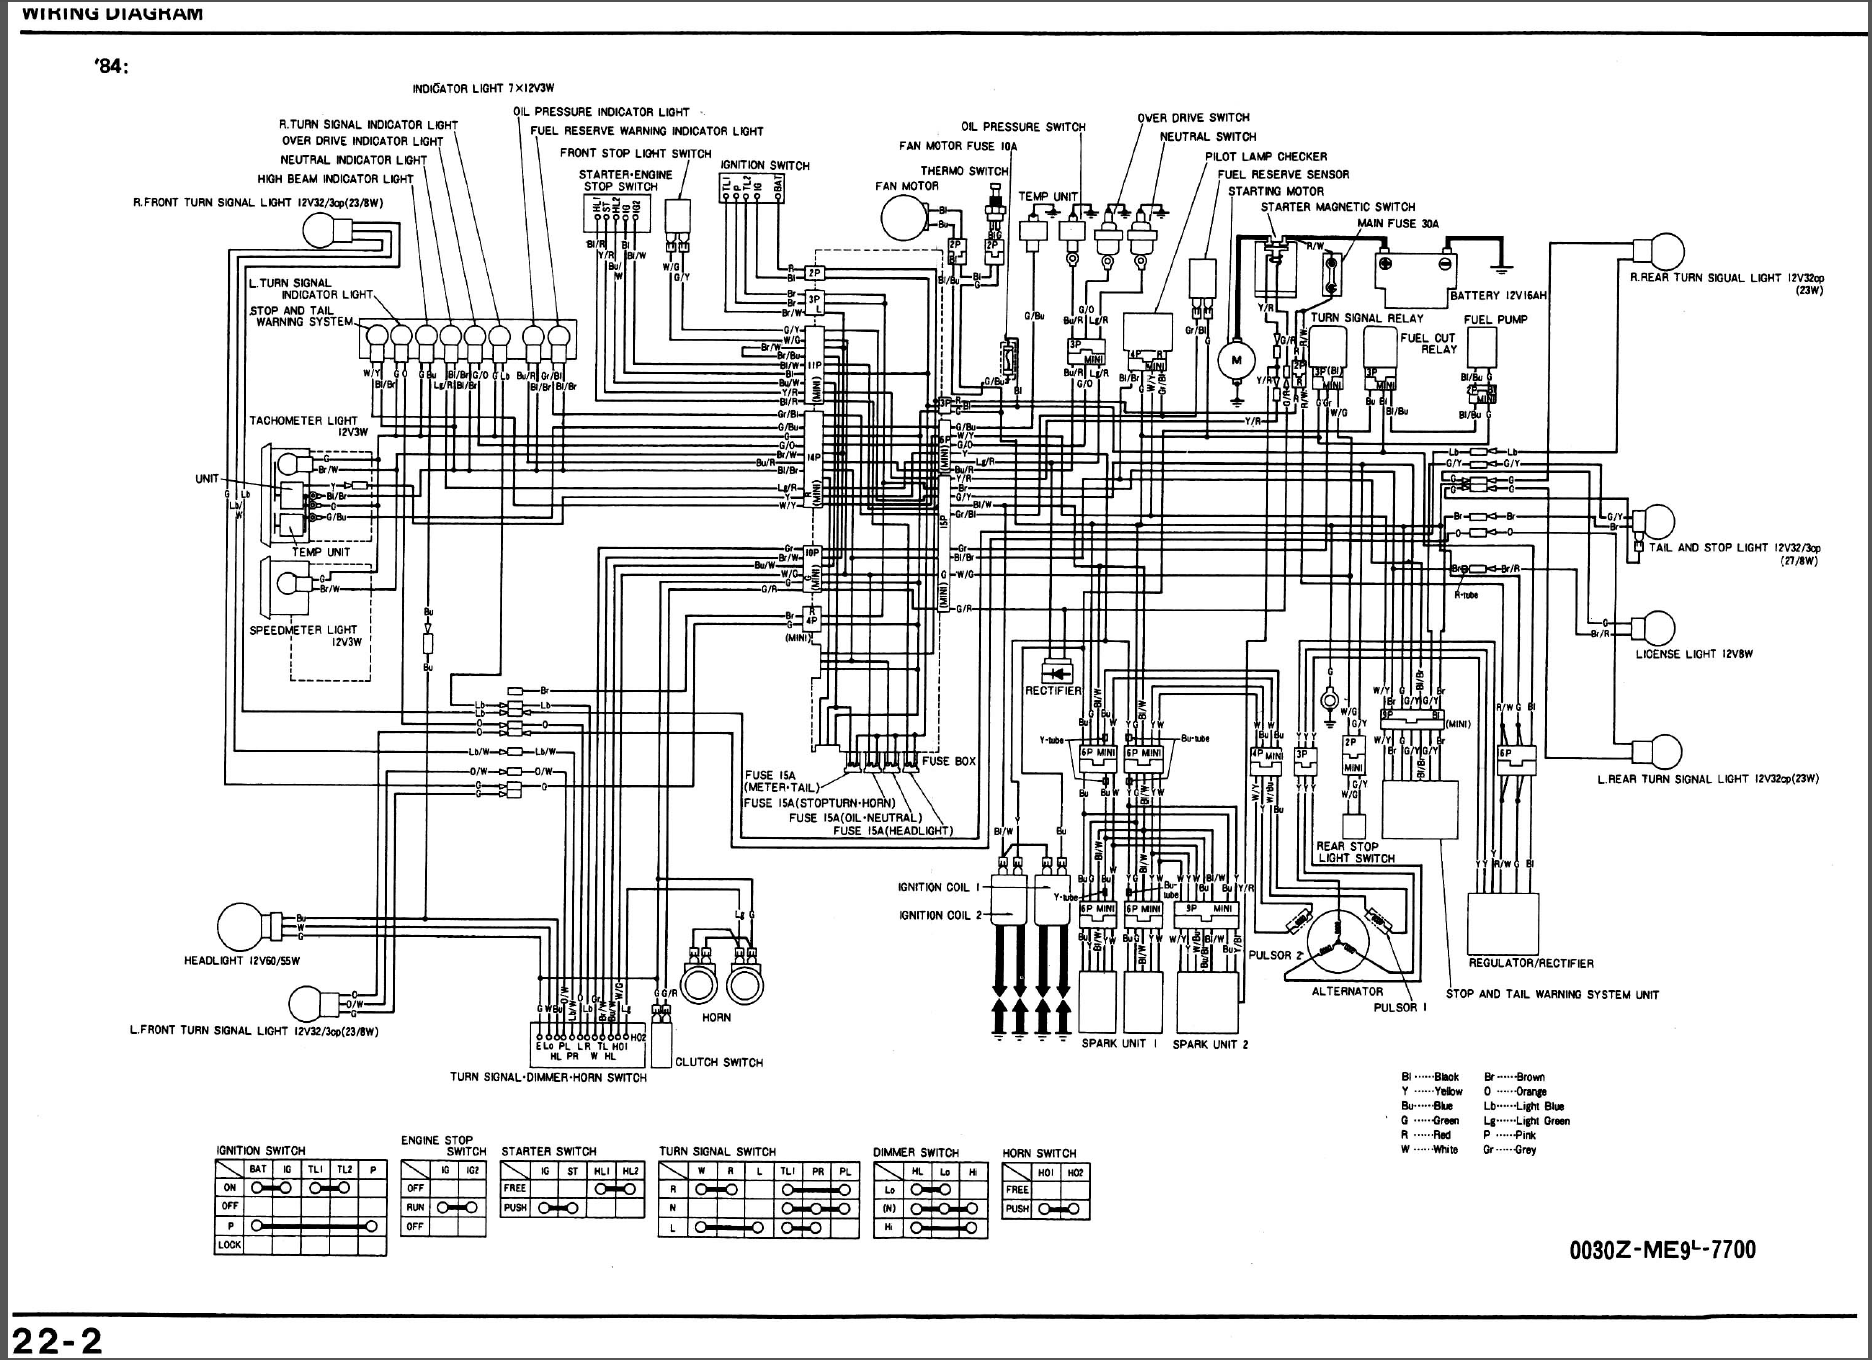 9265d1409799690 1984 honda shadow 700 wireing diagram b shadow wiring diagram honda wiring diagrams instruction 1984 honda shadow vt700 wiring diagram at bakdesigns.co